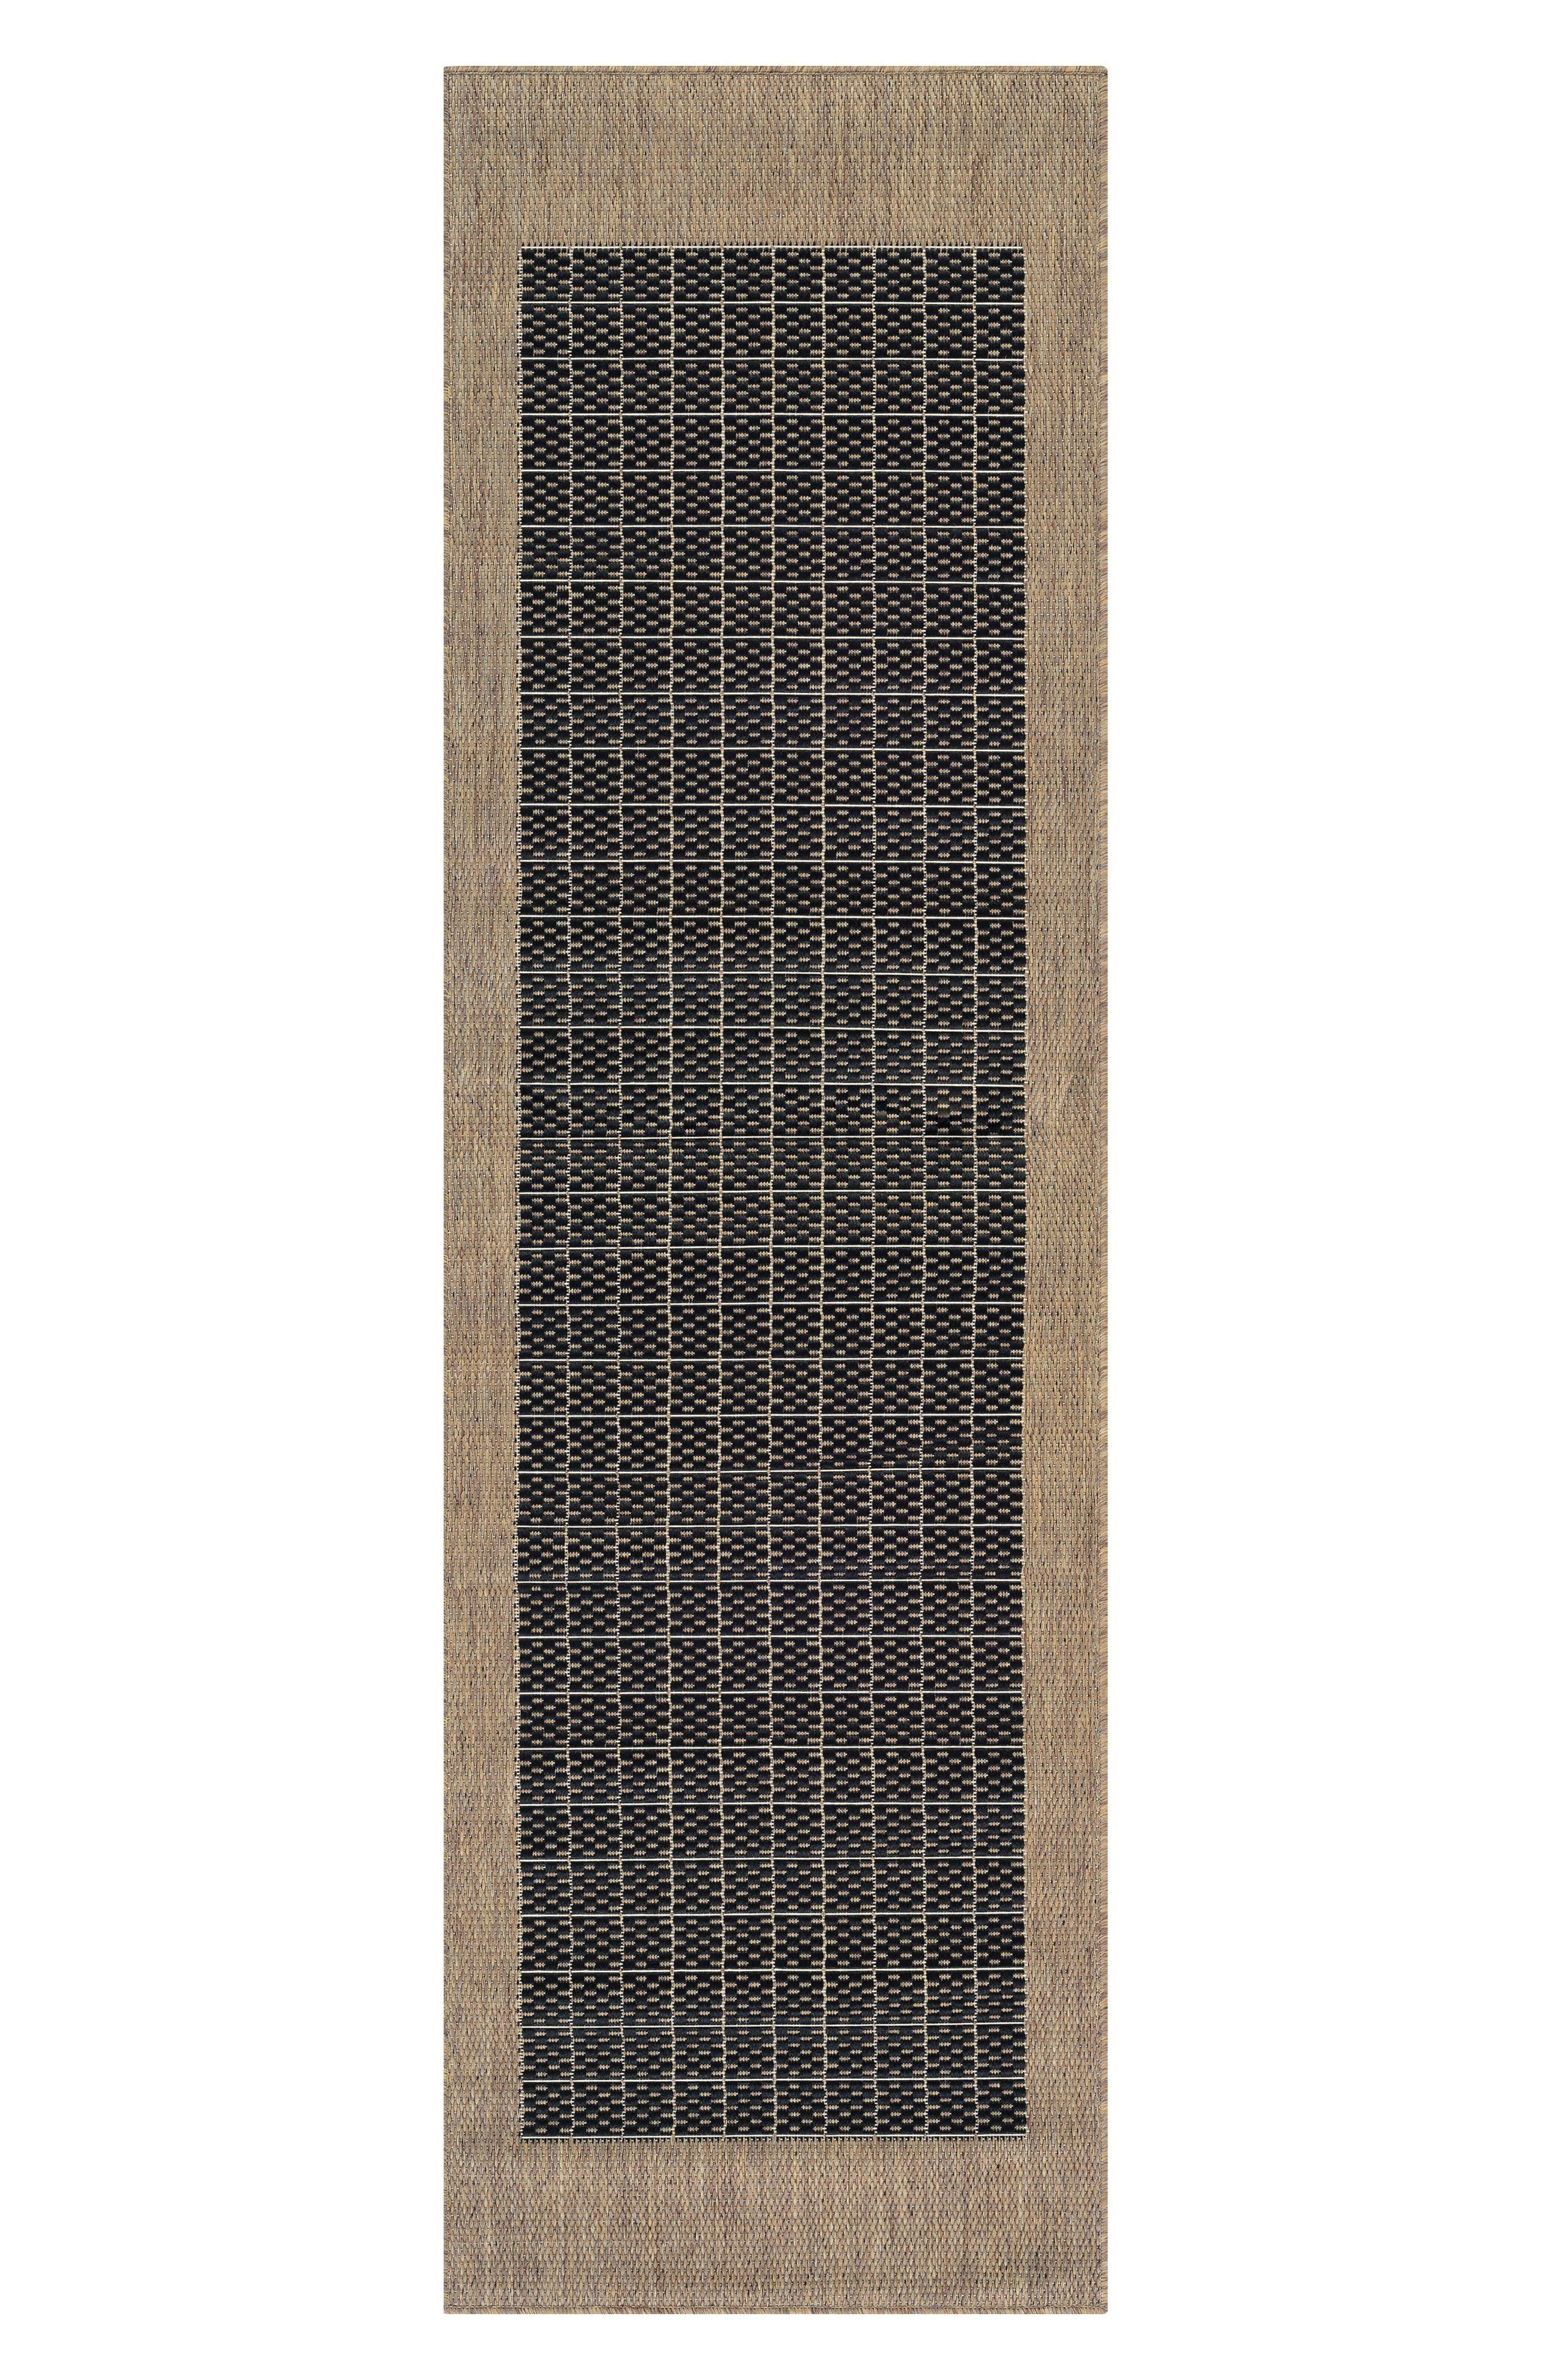 Checkered Field Indoor/Outdoor Rug,                             Alternate thumbnail 2, color,                             Black/ Cocoa